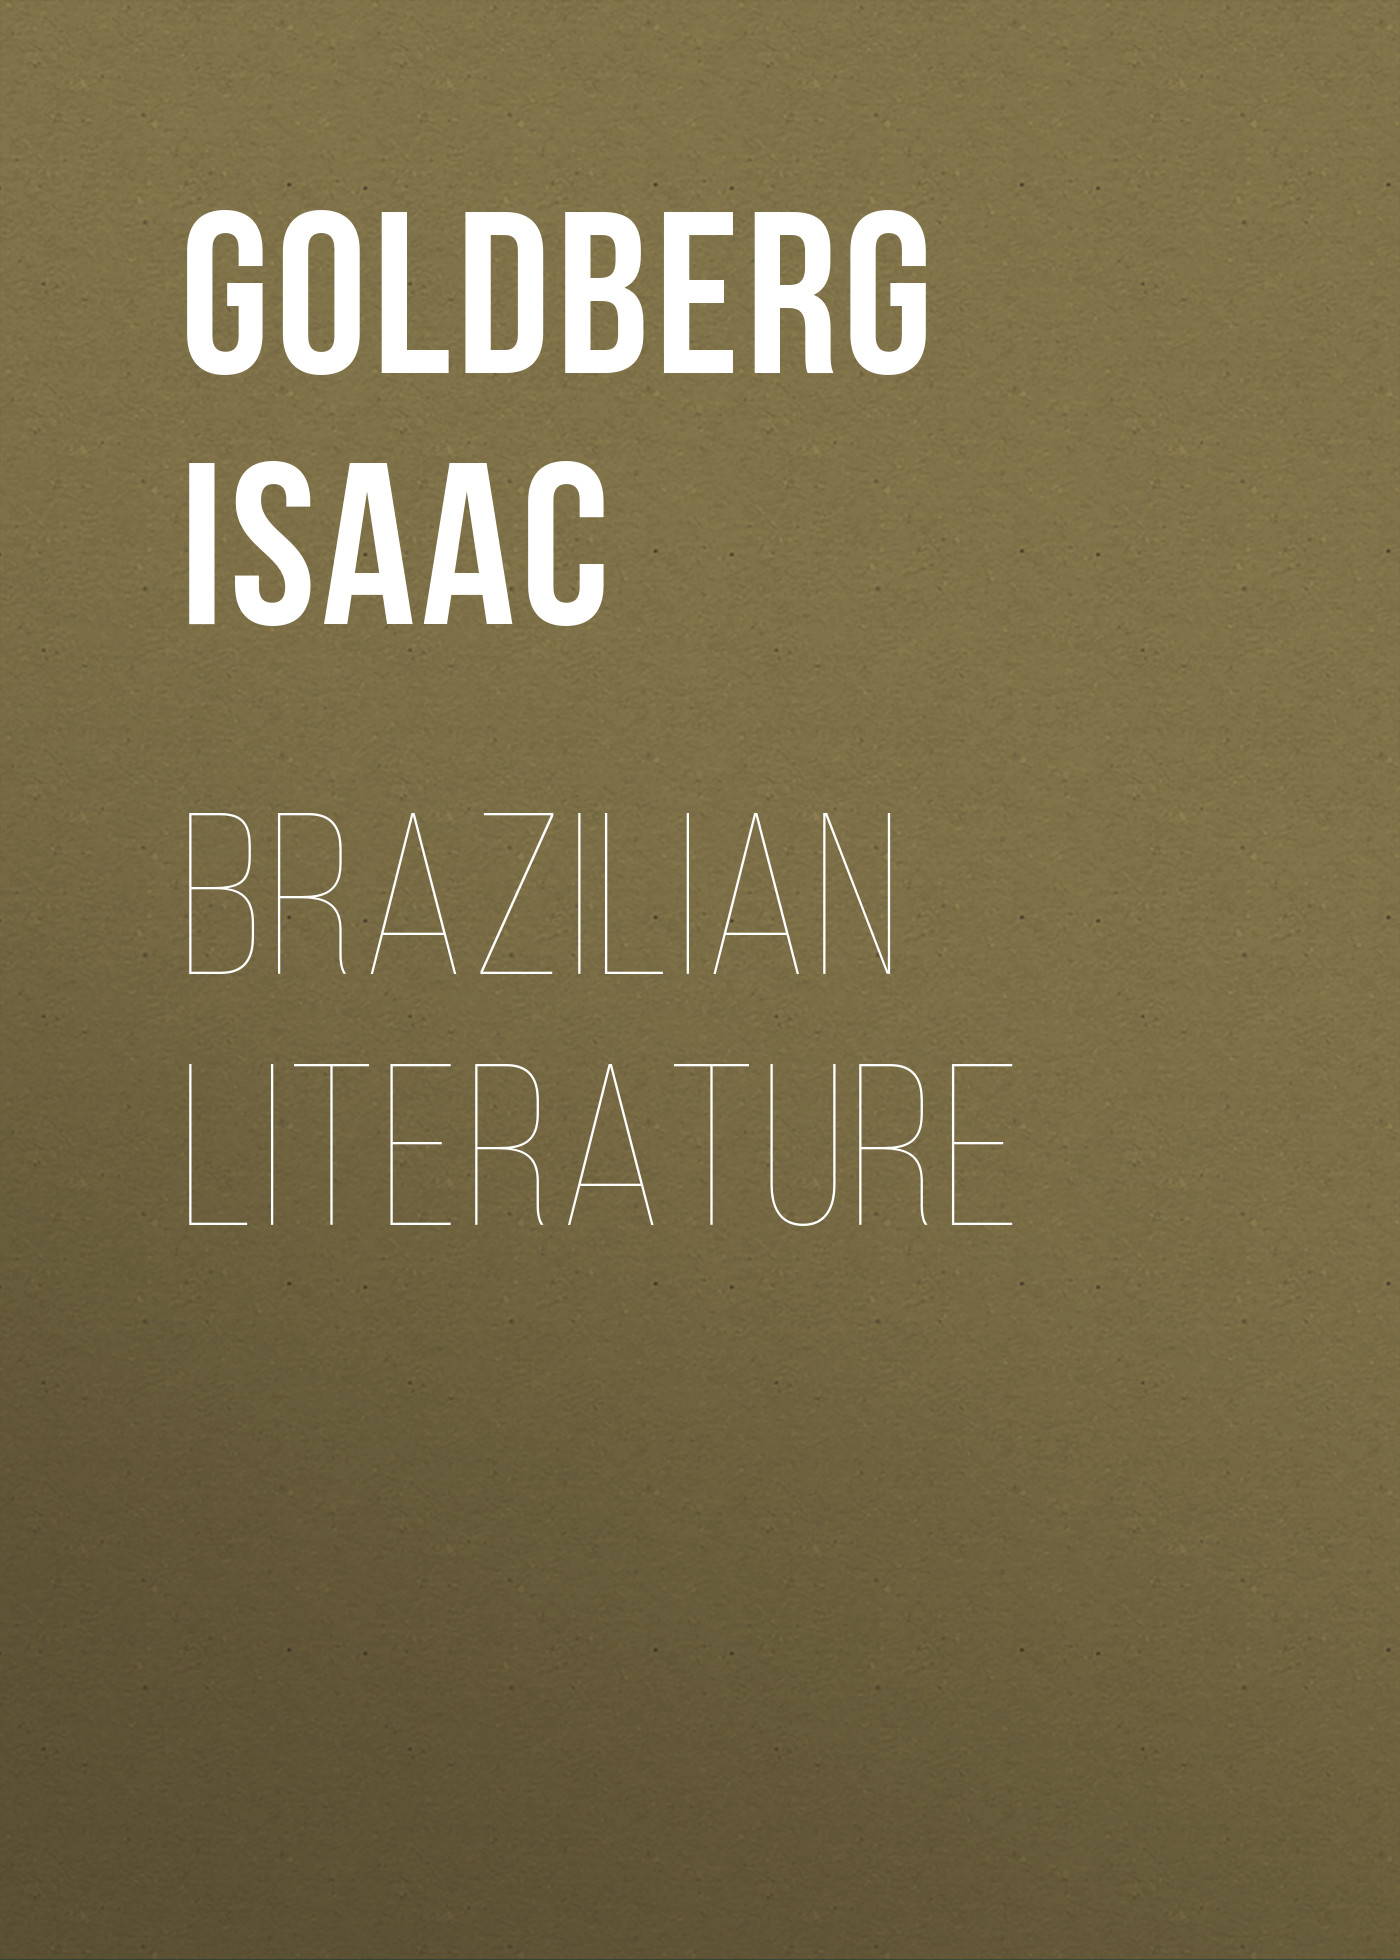 Goldberg Isaac Brazilian Literature